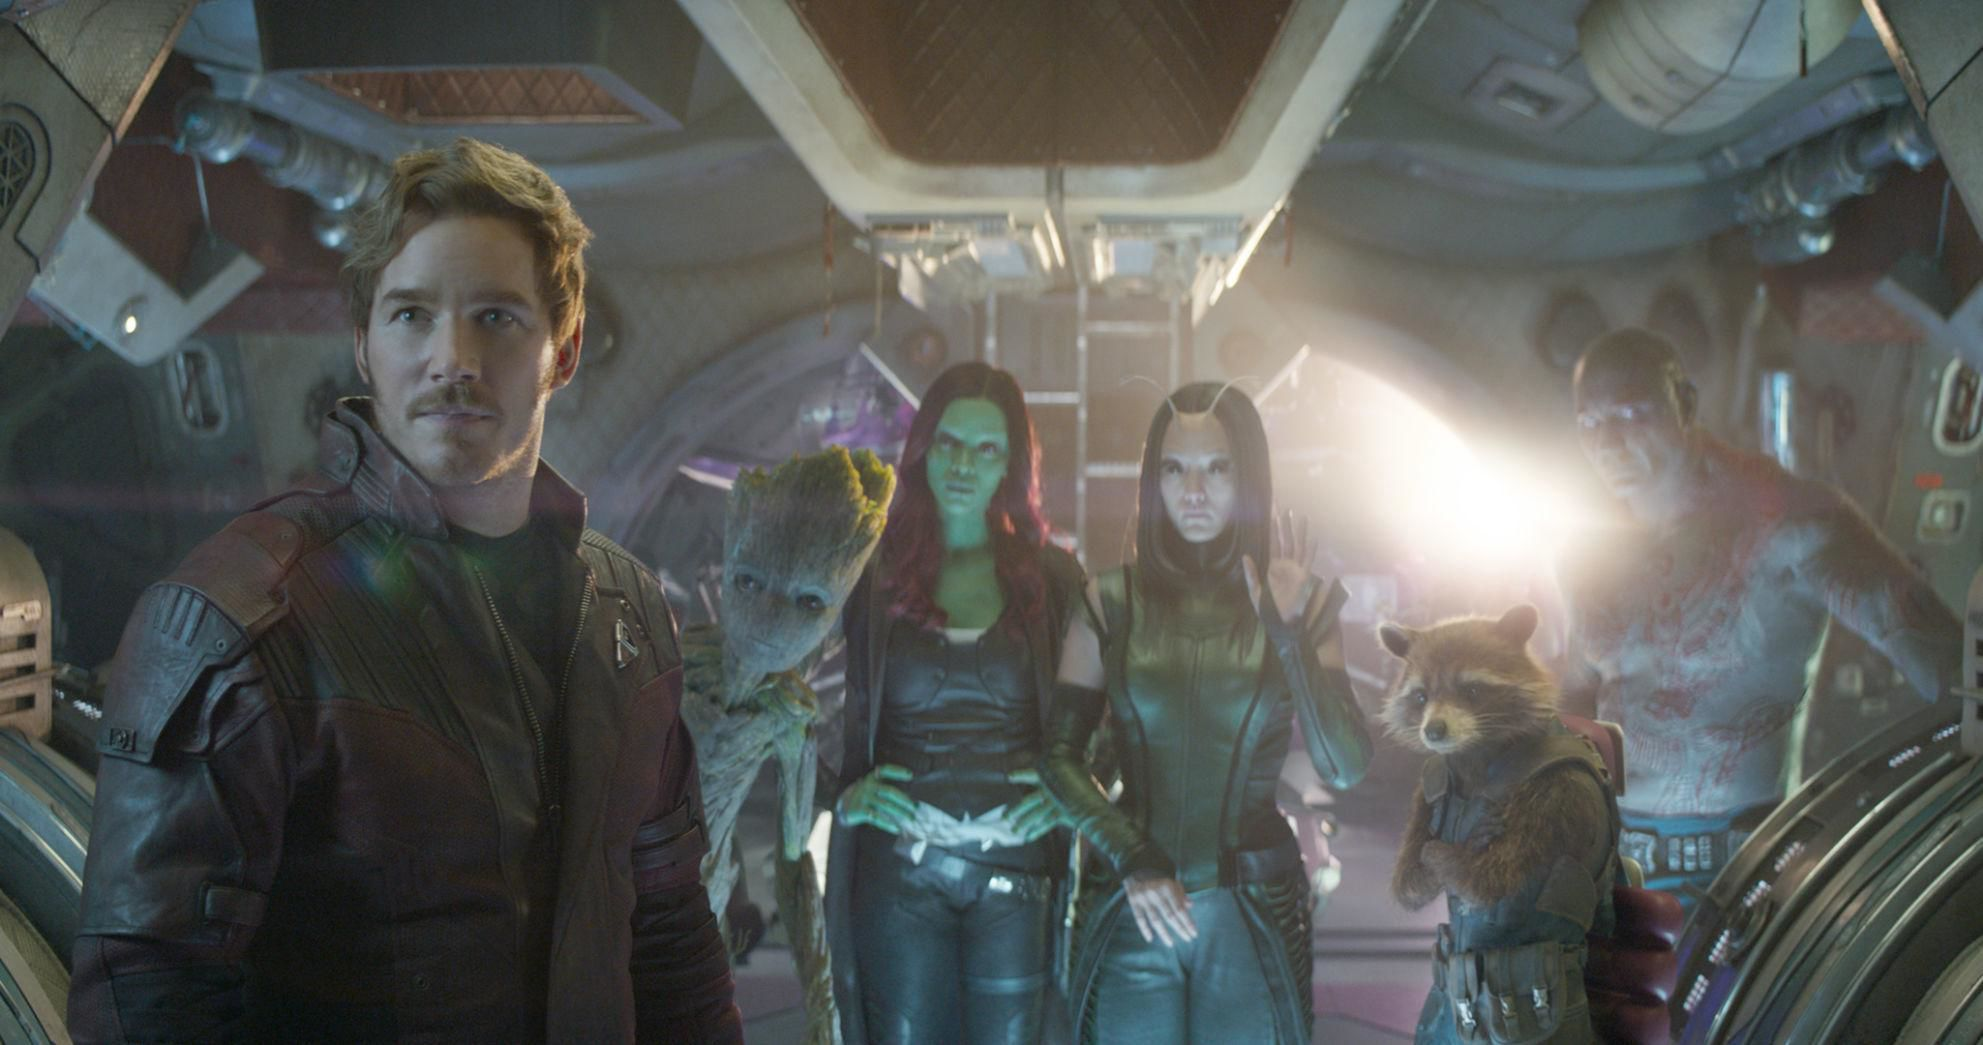 MOVIE REVIEW   Avengers  Infinity War  a cheap buffet for your         Gamora  Zoe Saldana   Mantis  Pom Klementieff   Rocket  voiced by  Bradley Cooper  and Drax  Dave Bautista  star in    Avengers  Infinity War